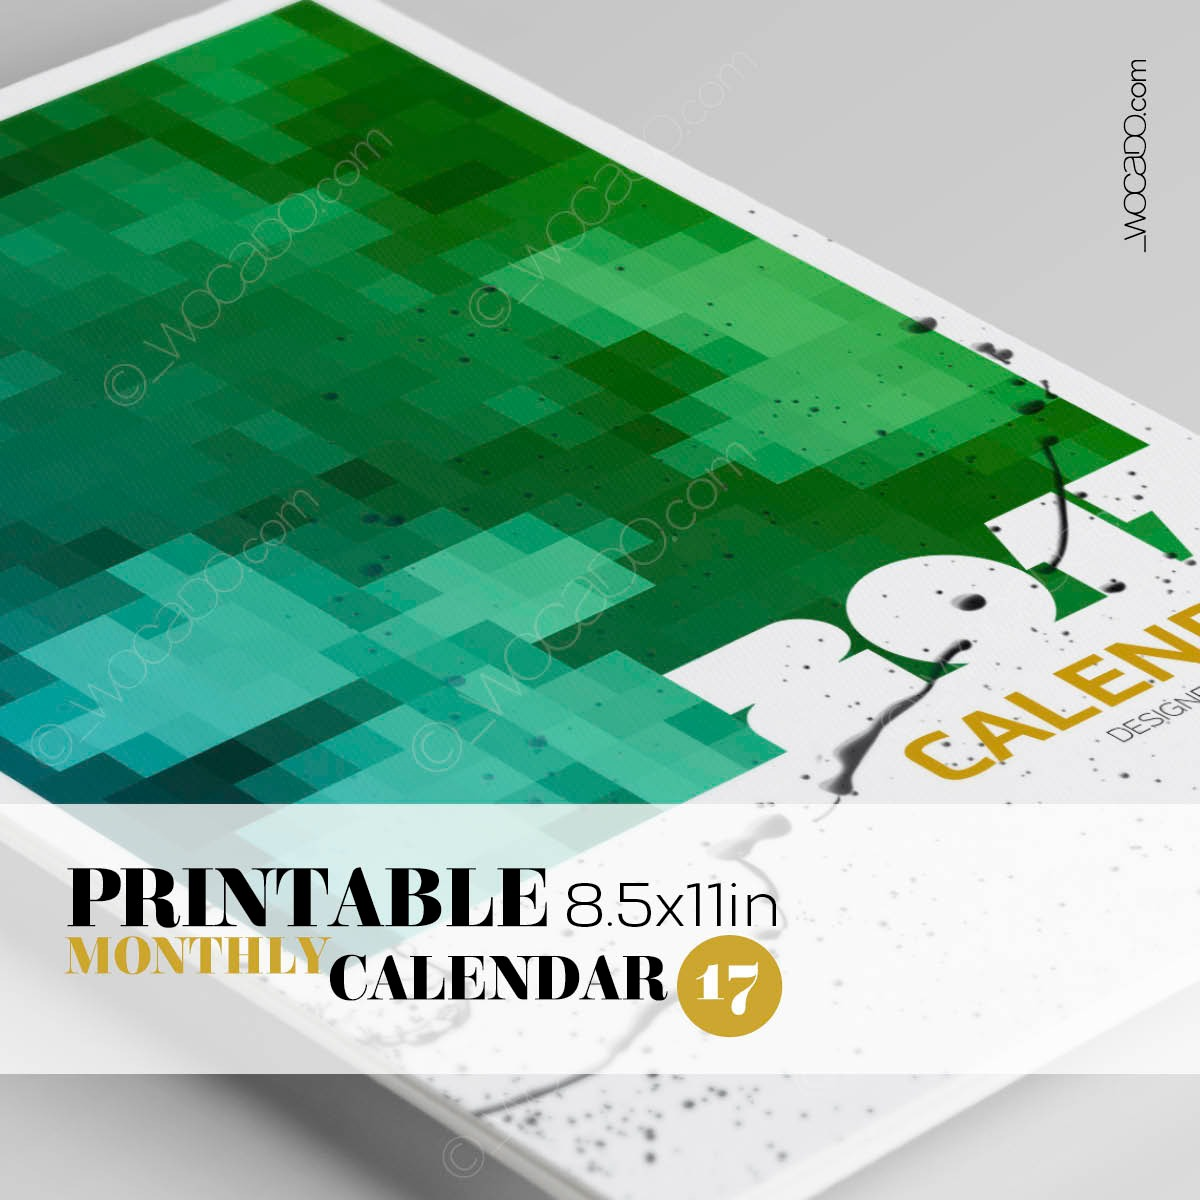 On The Square – Monthly Printable Calendar 2017 - 8,5x11, Multicolor Mosaic, Designer Style